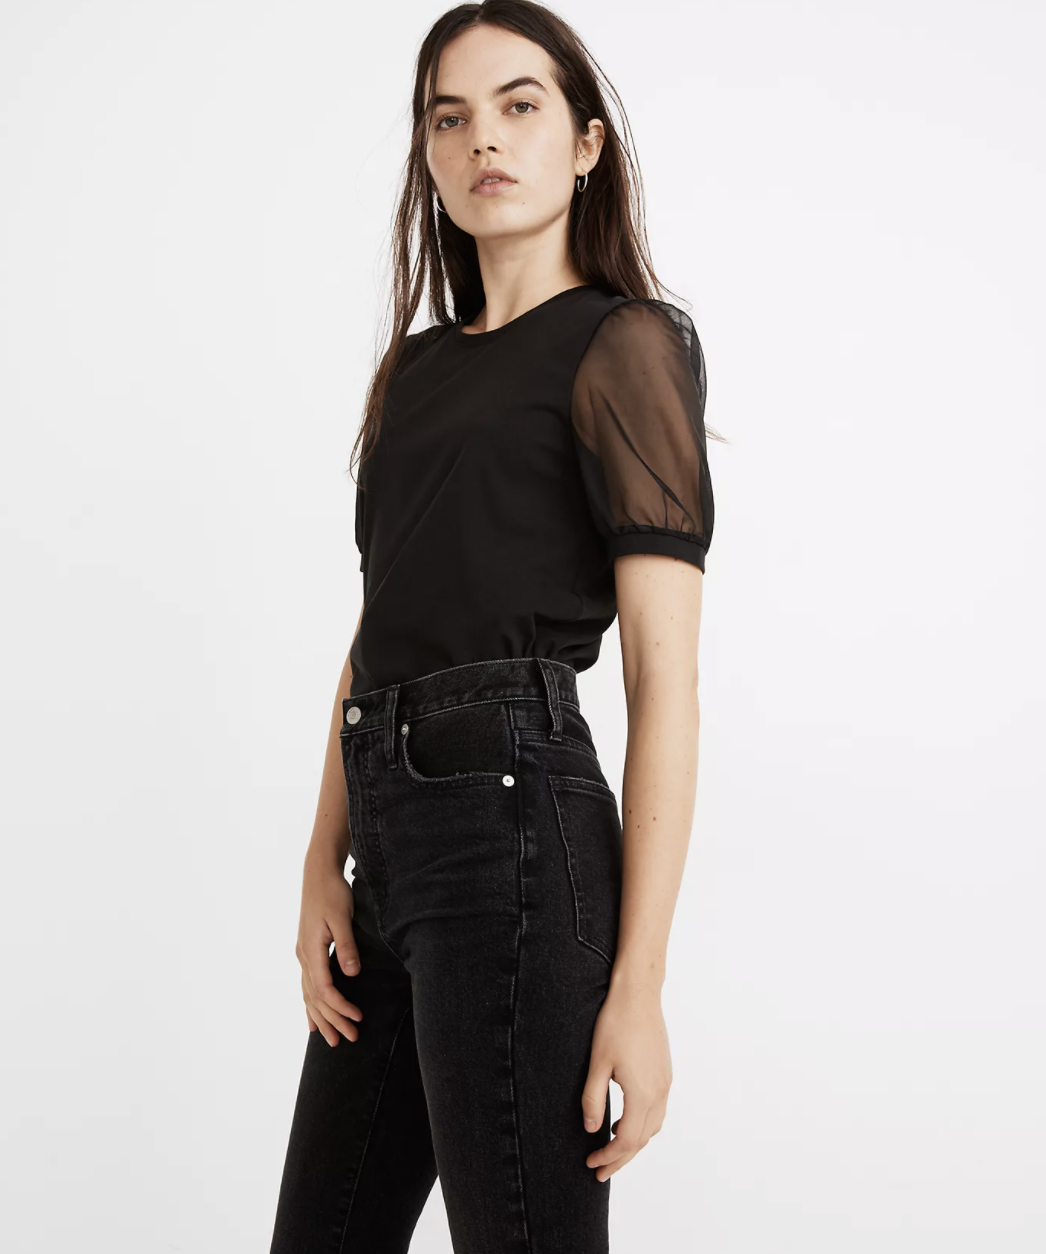 the top in black, tucked in